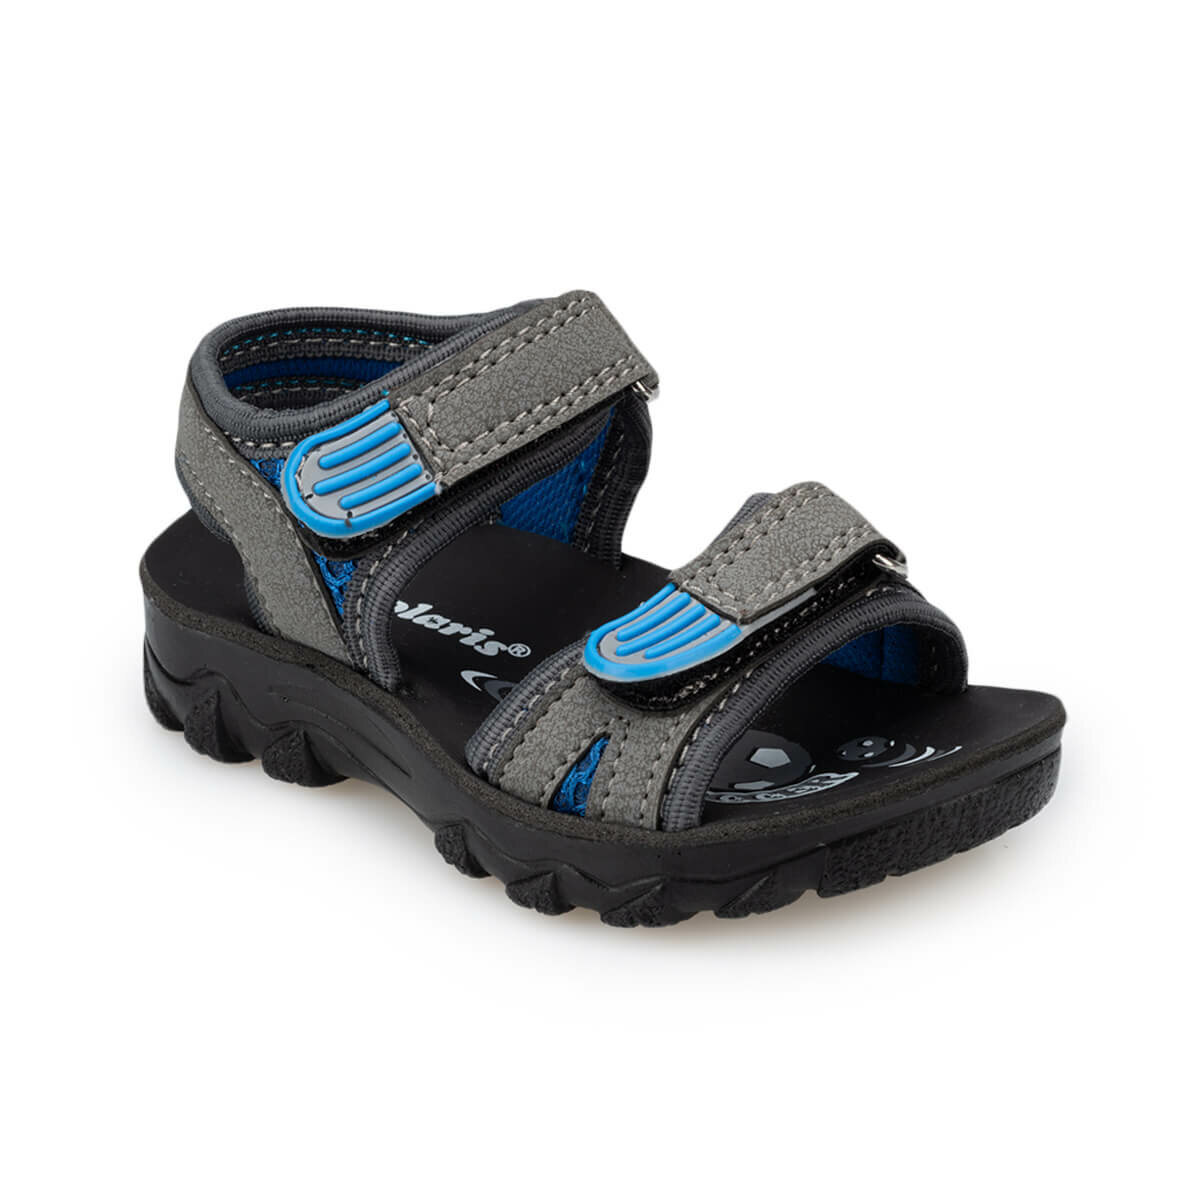 FLO 91.510358.B Gray Male Child Without Spikes Sandals Polaris